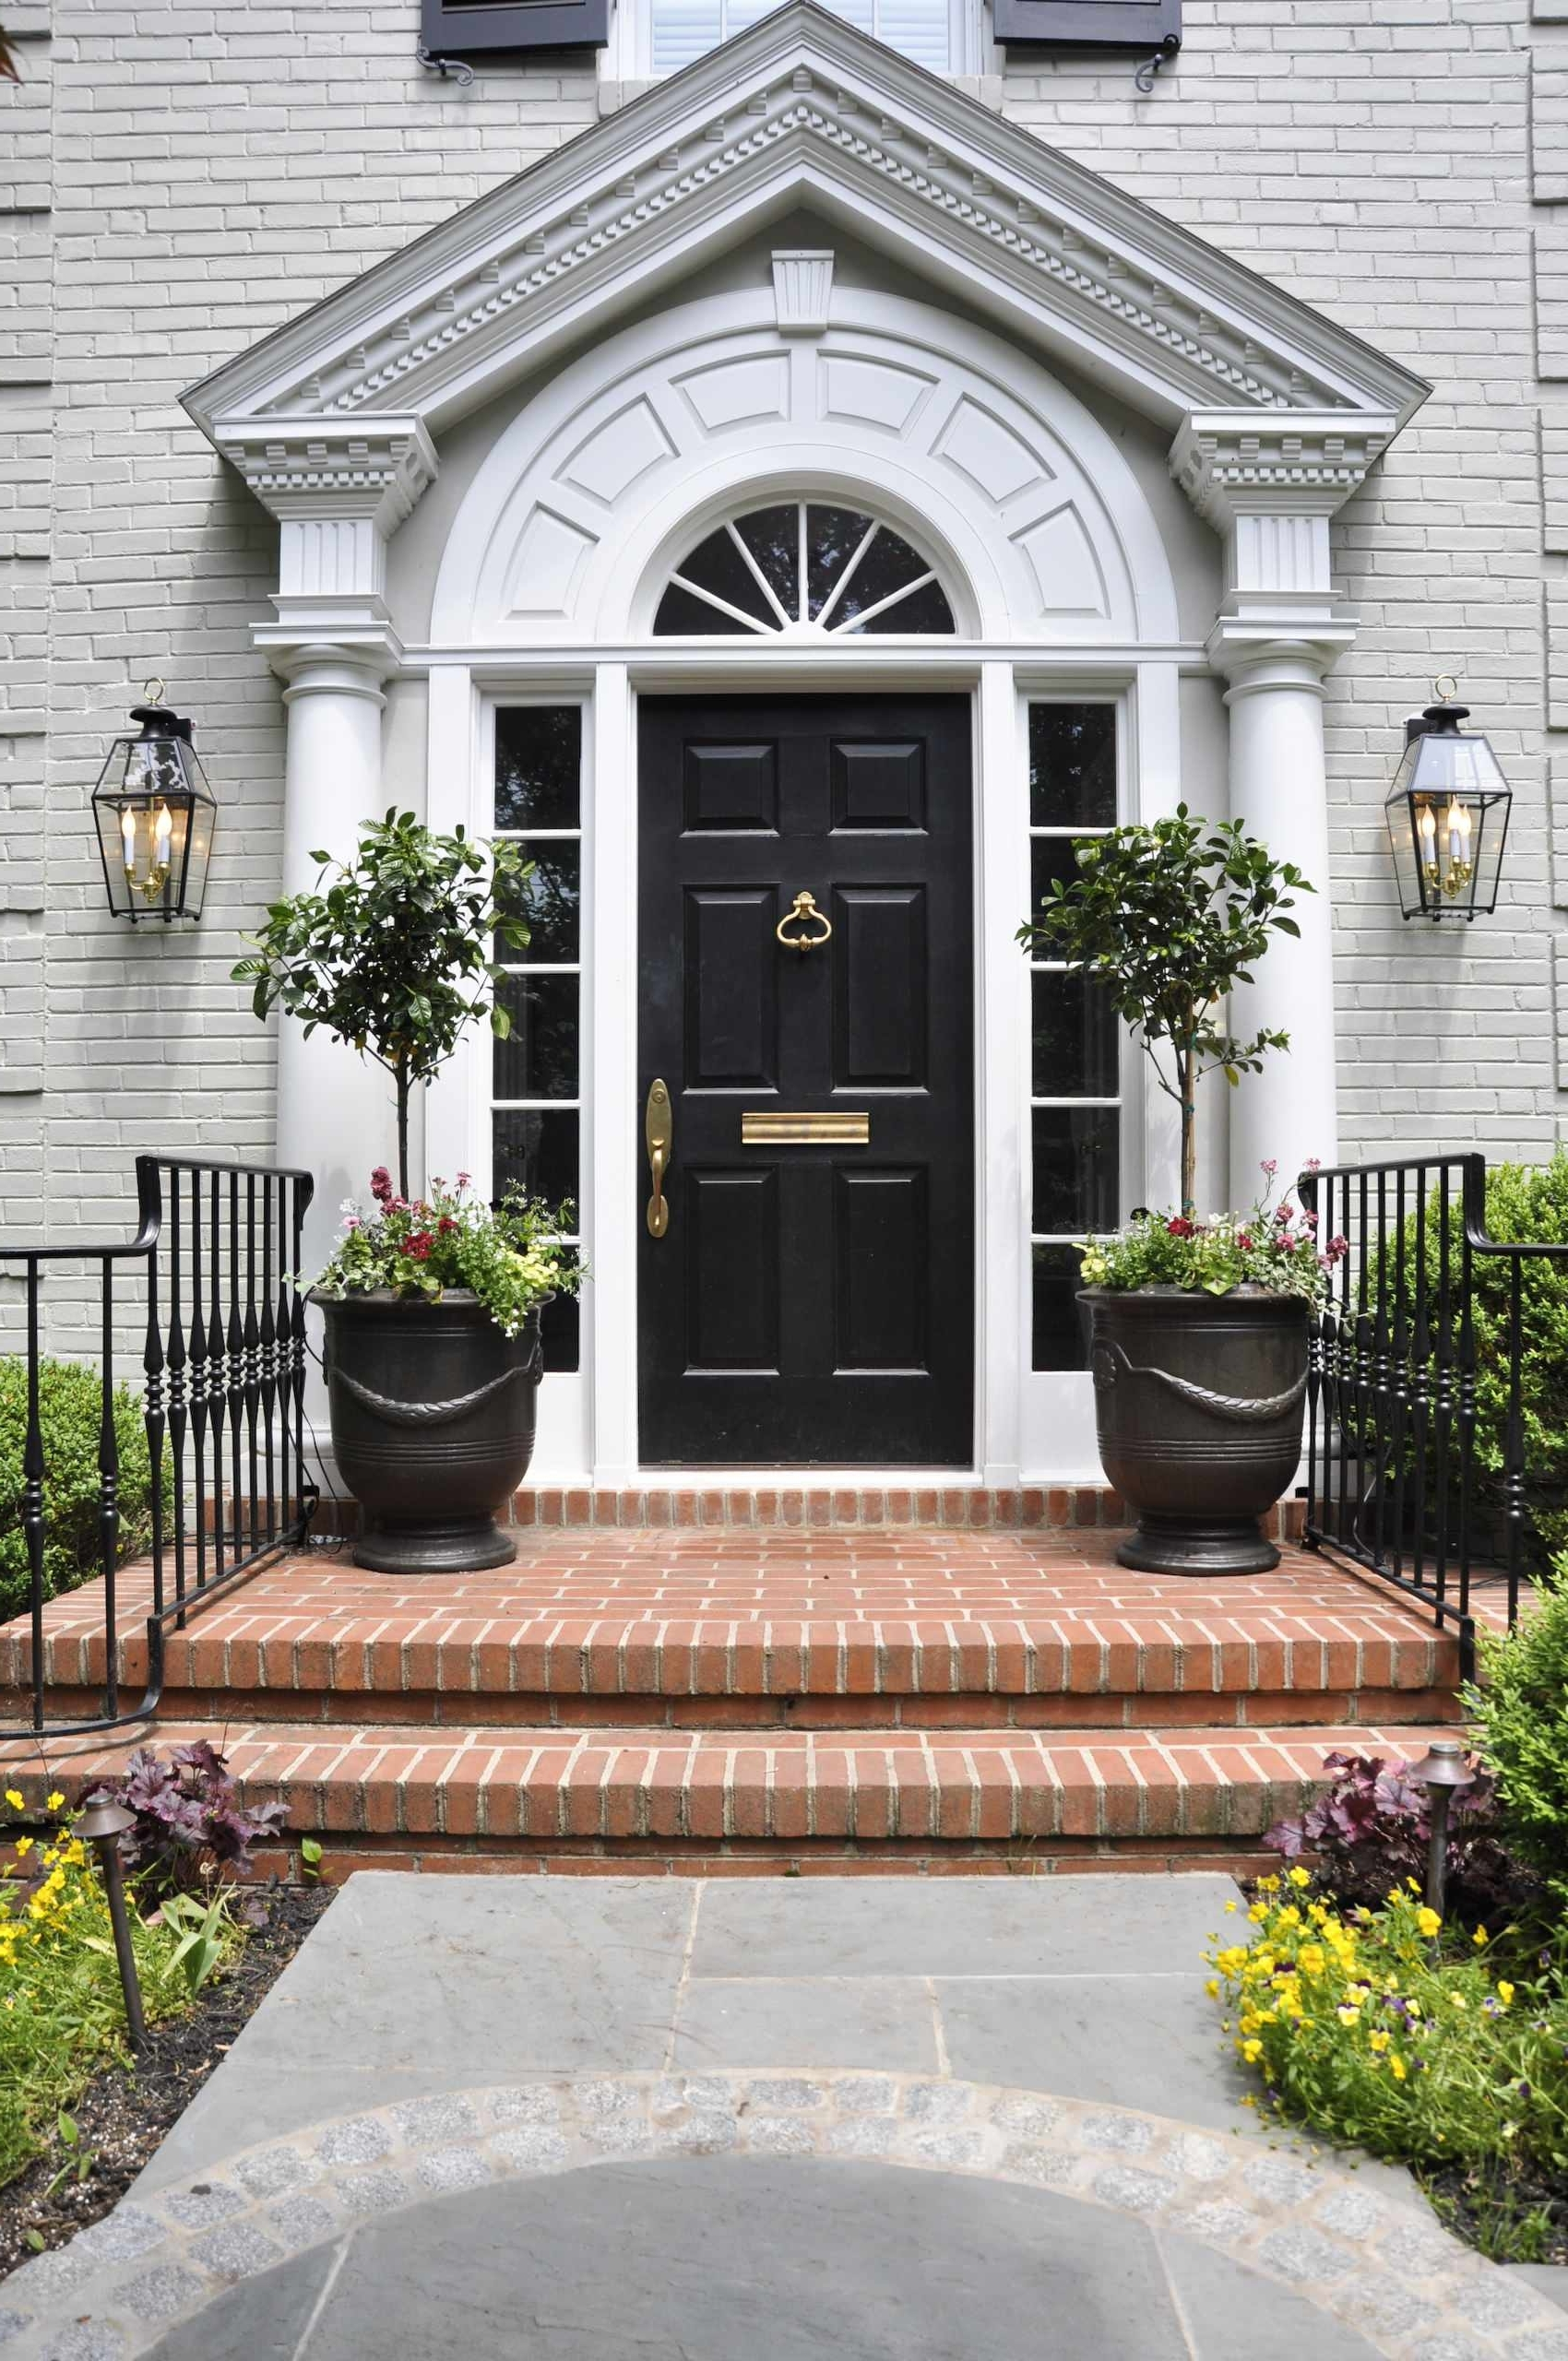 Outdoor Entrance Lanterns Throughout Most Popular Exterior Design: Decorating With Lanterns And Entrance Pots Also (View 13 of 20)